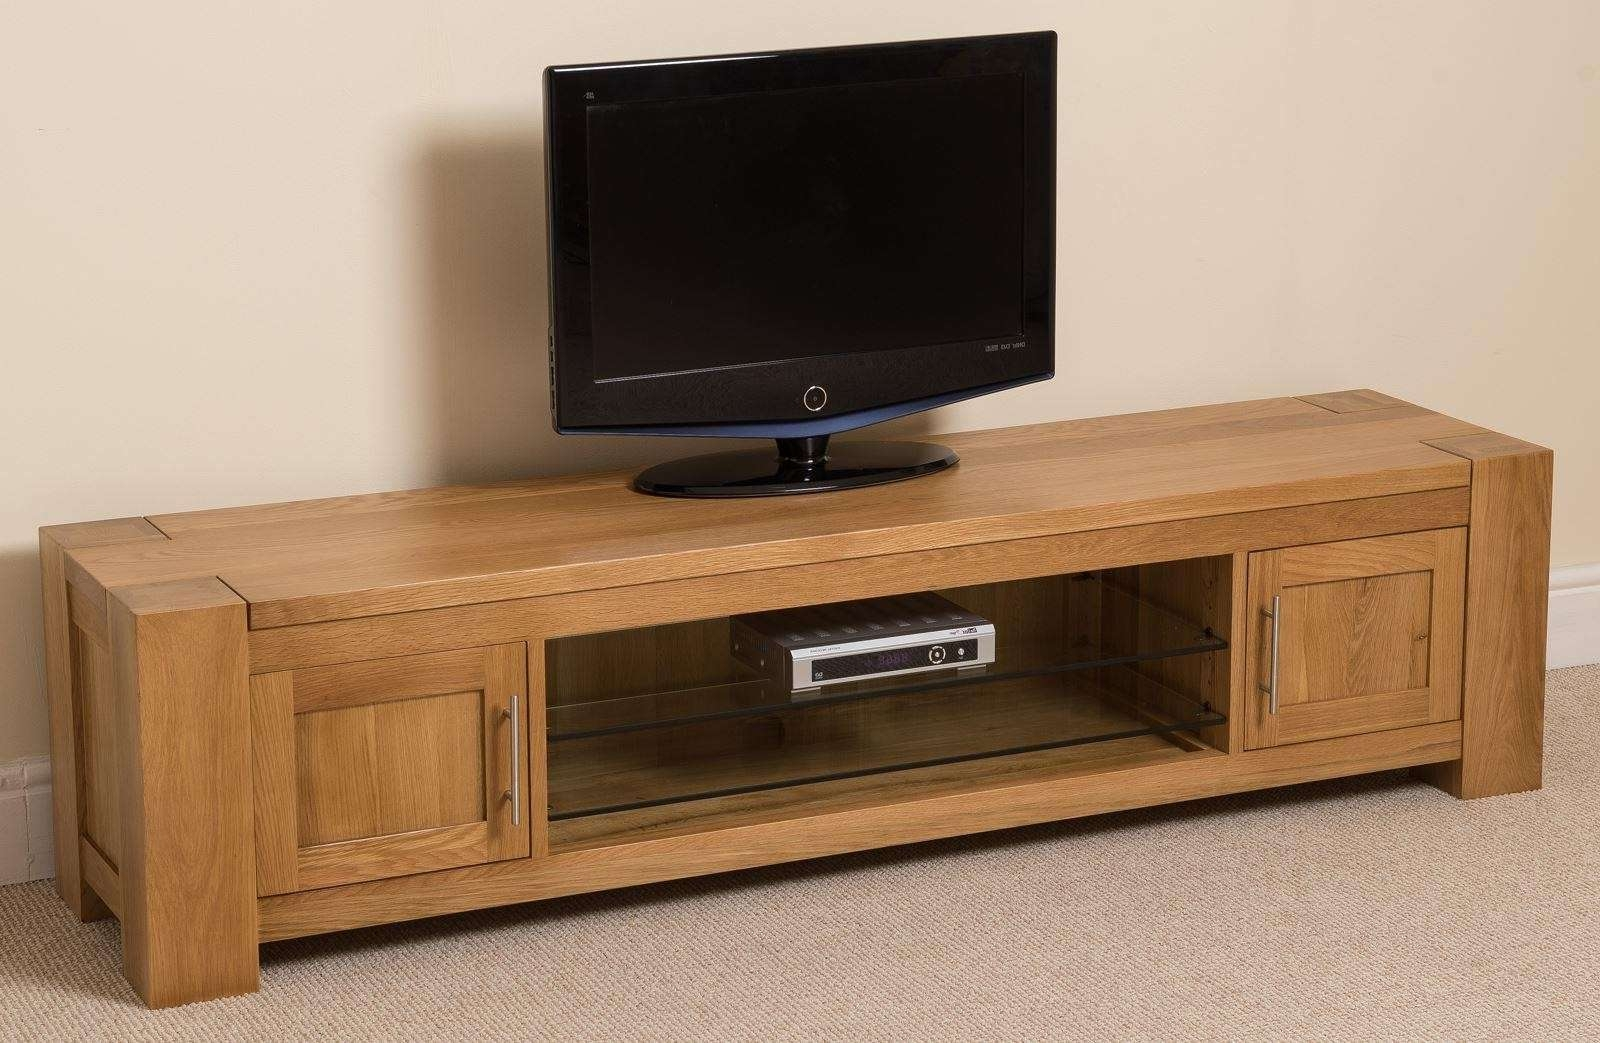 Kuba Solid Widescreen Tv Cabinet | Oak Furniture King Pertaining To Widescreen Tv Stands (Gallery 6 of 15)